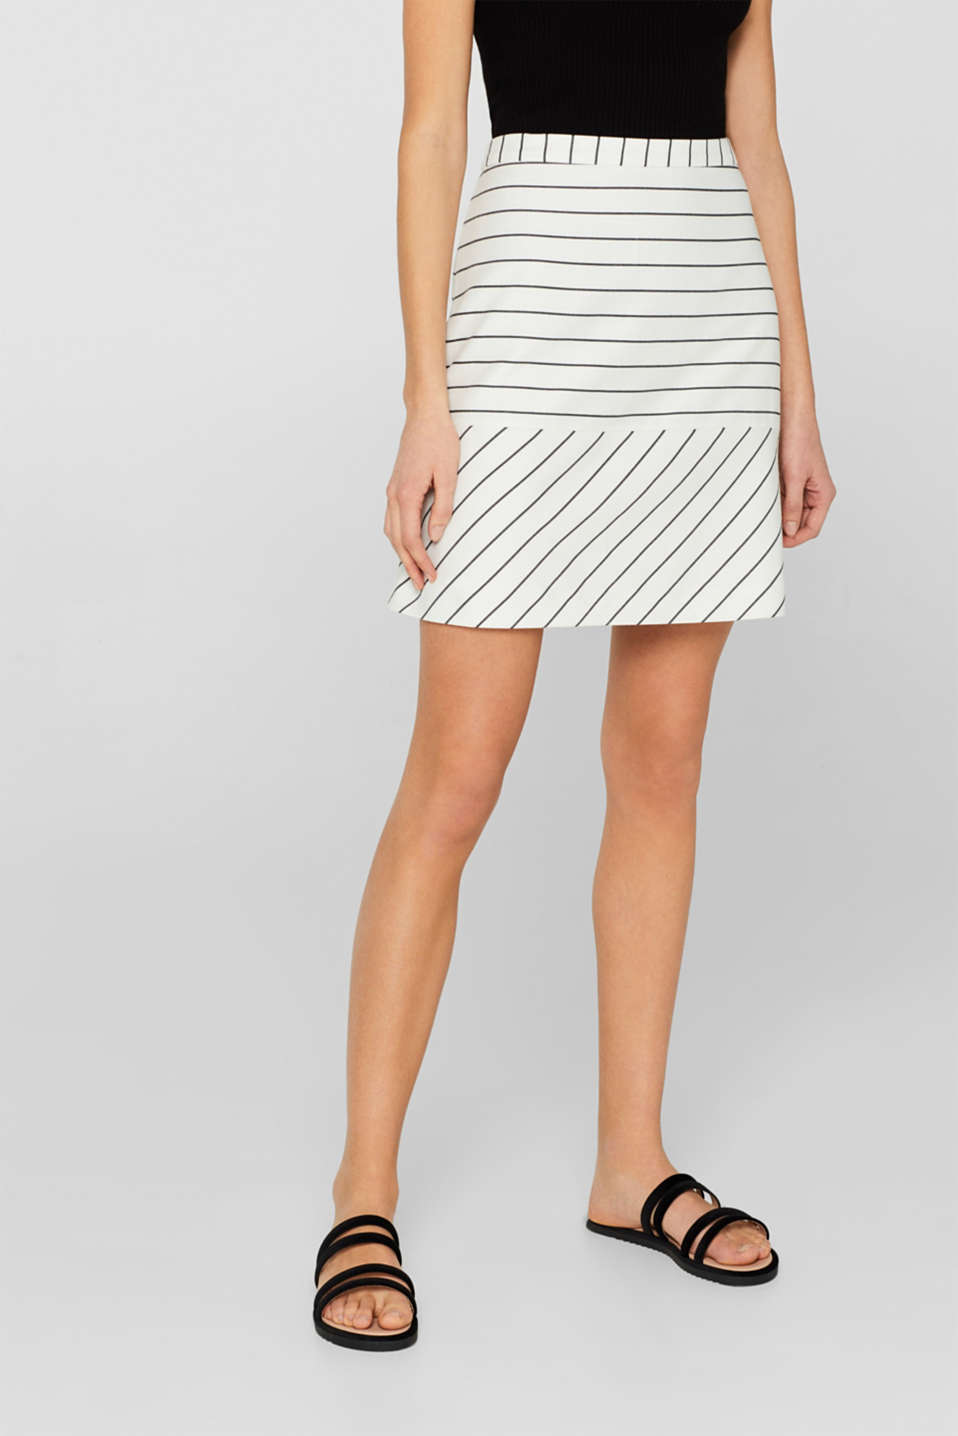 Esprit - Woven stretch skirt with two kinds of stripes